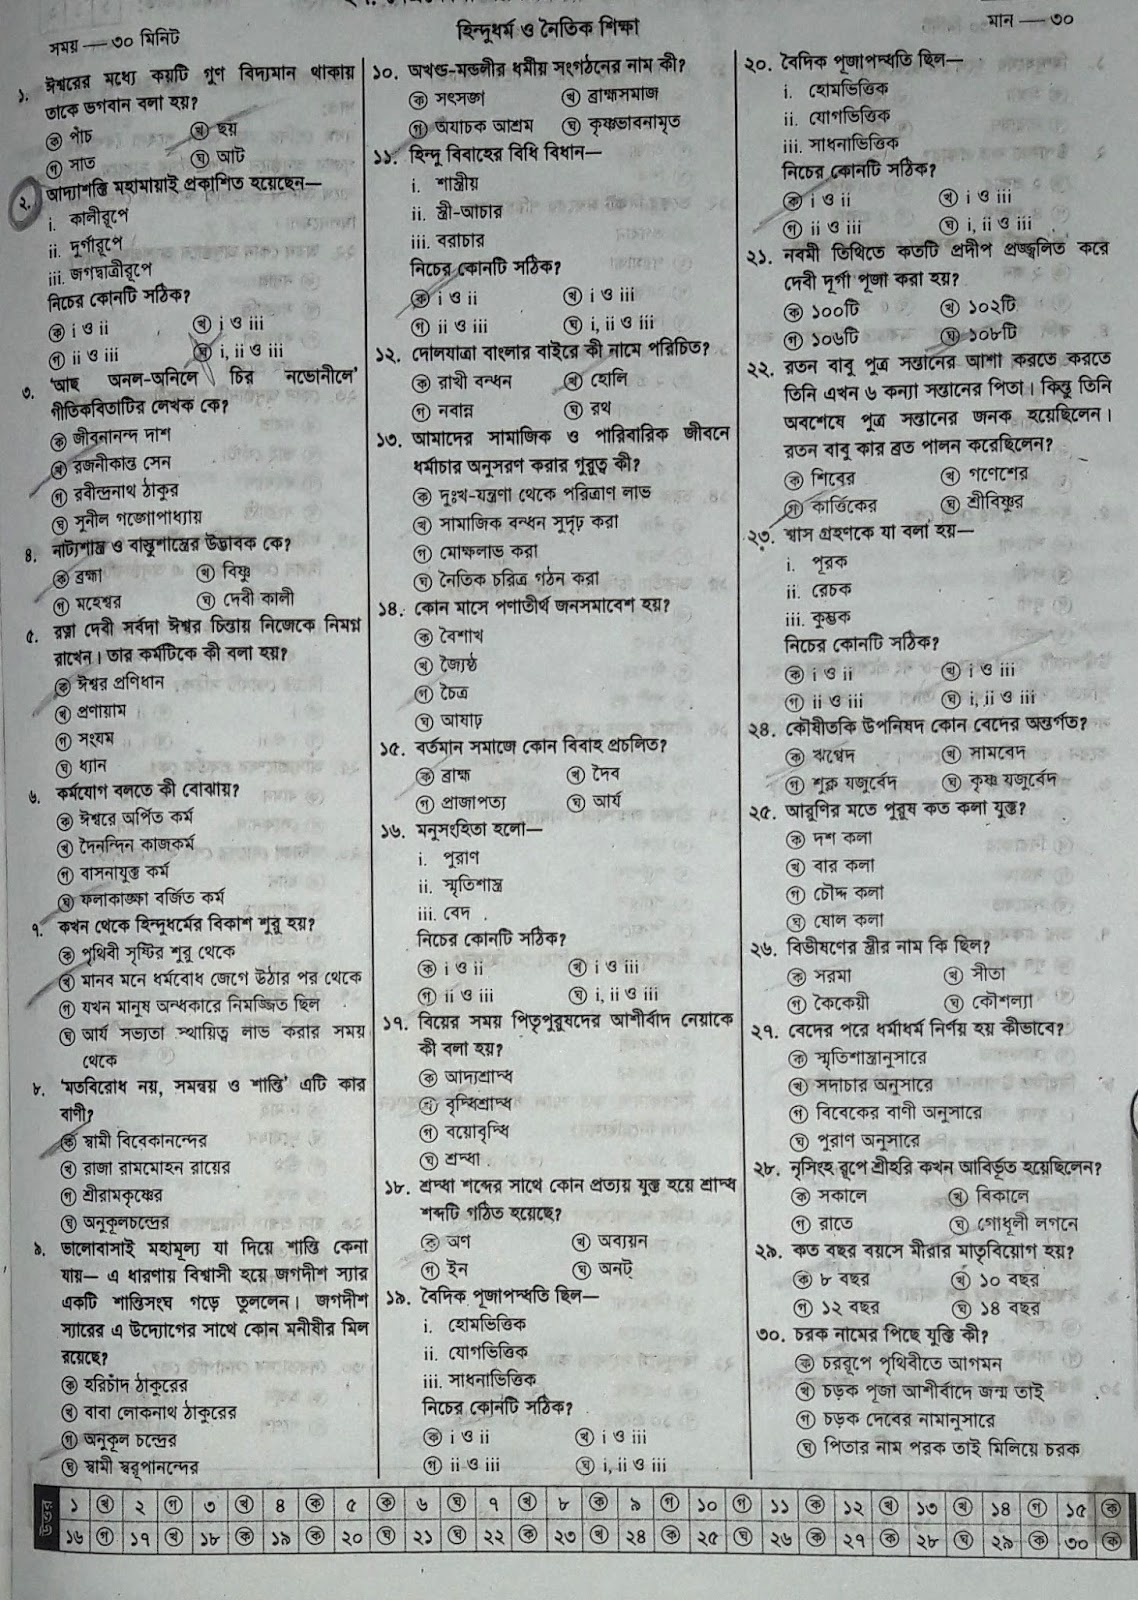 ssc Hindu Dharma suggestion, question paper, model question, mcq question, question pattern, syllabus for dhaka board, all boards